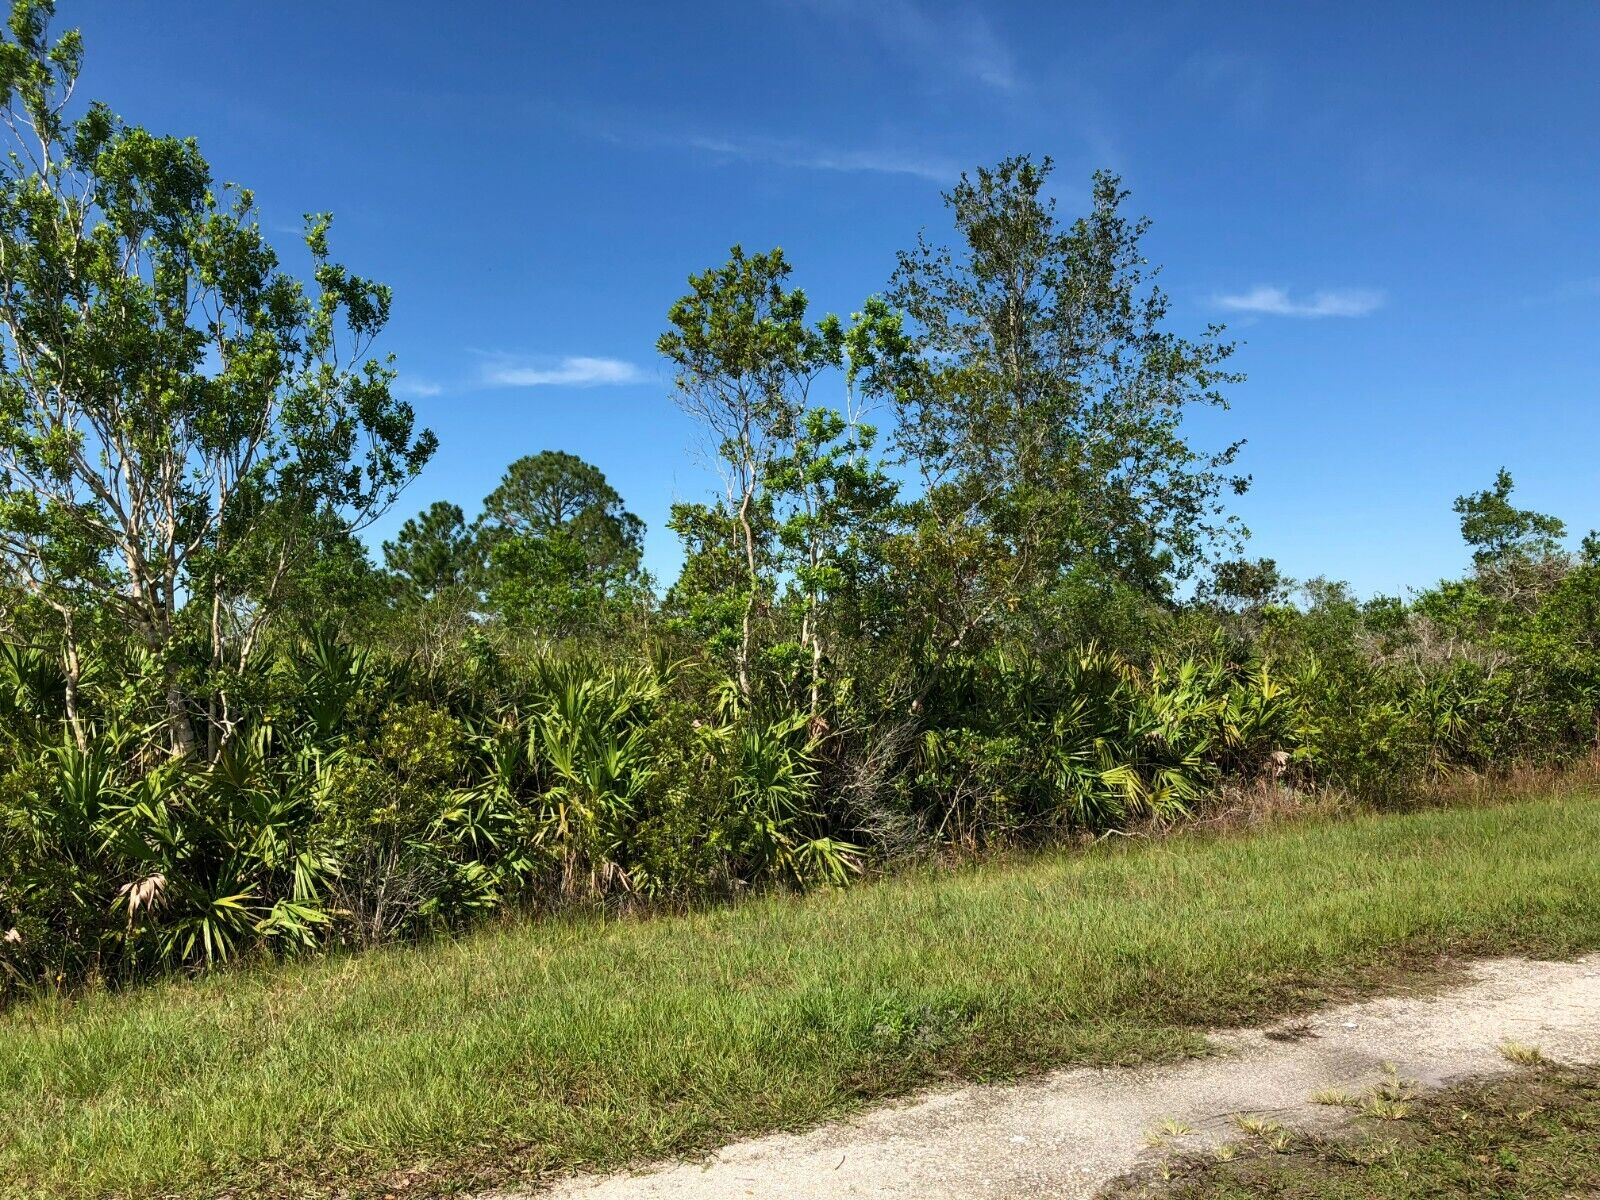 0.31 Acre Central Florida Land Lot Near Lake Wales, FL Bidding On Full Price NR - $255.00